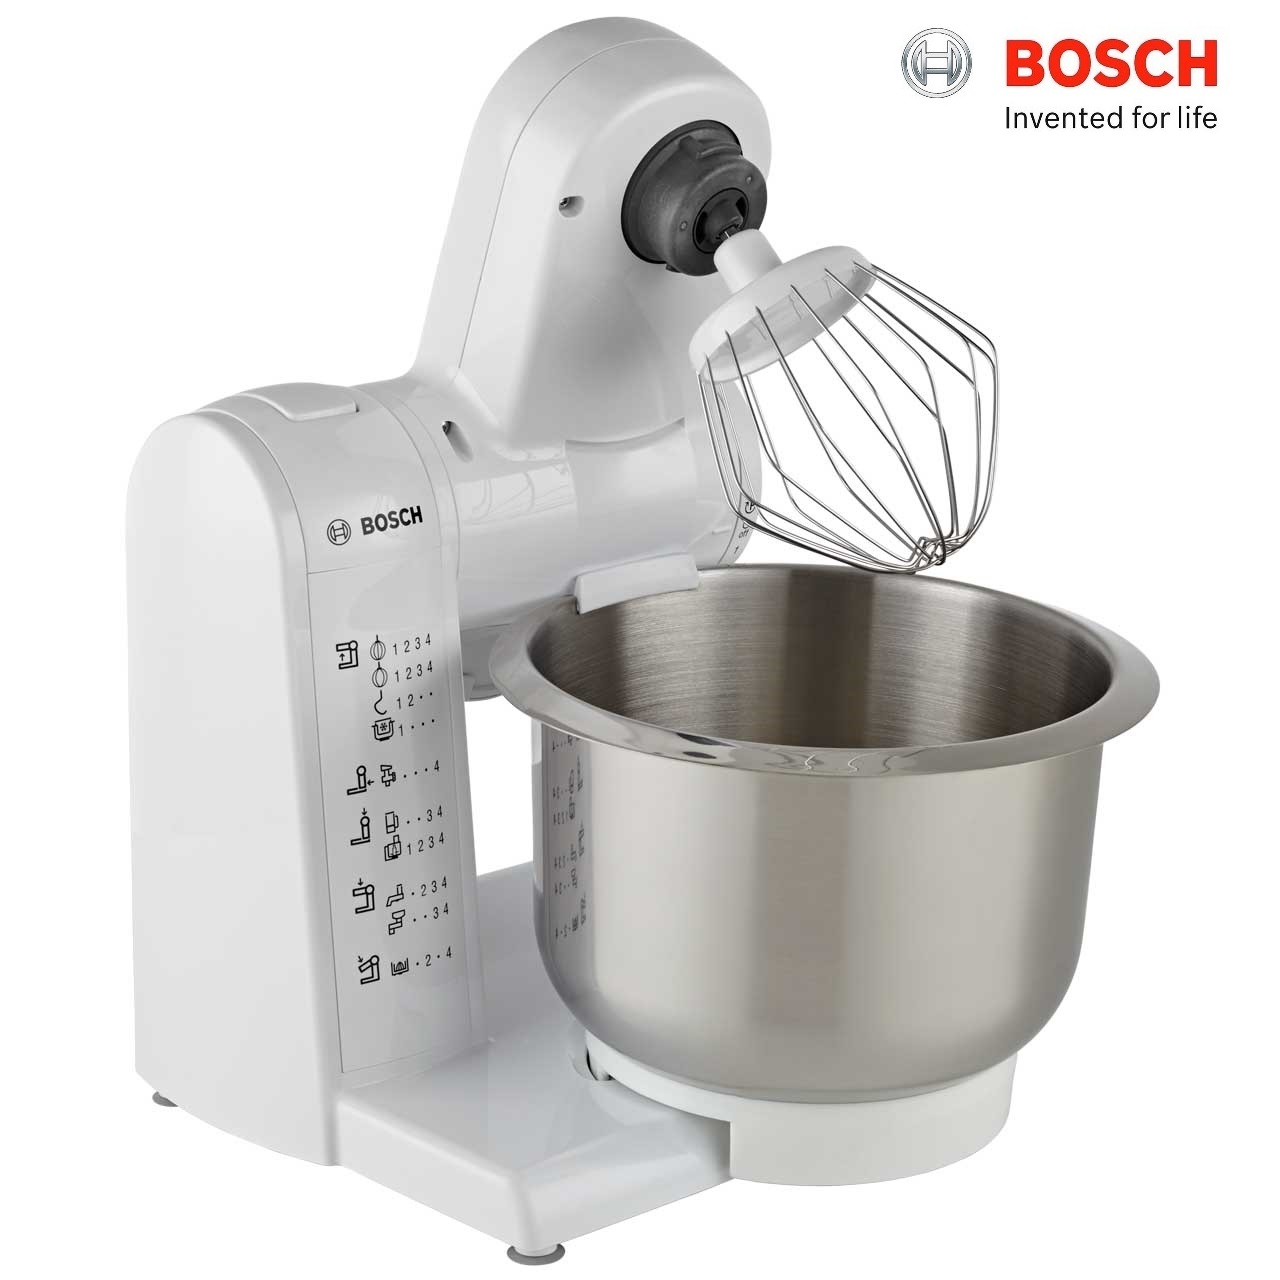 Image Result For Bosch Cake Mixer Machine